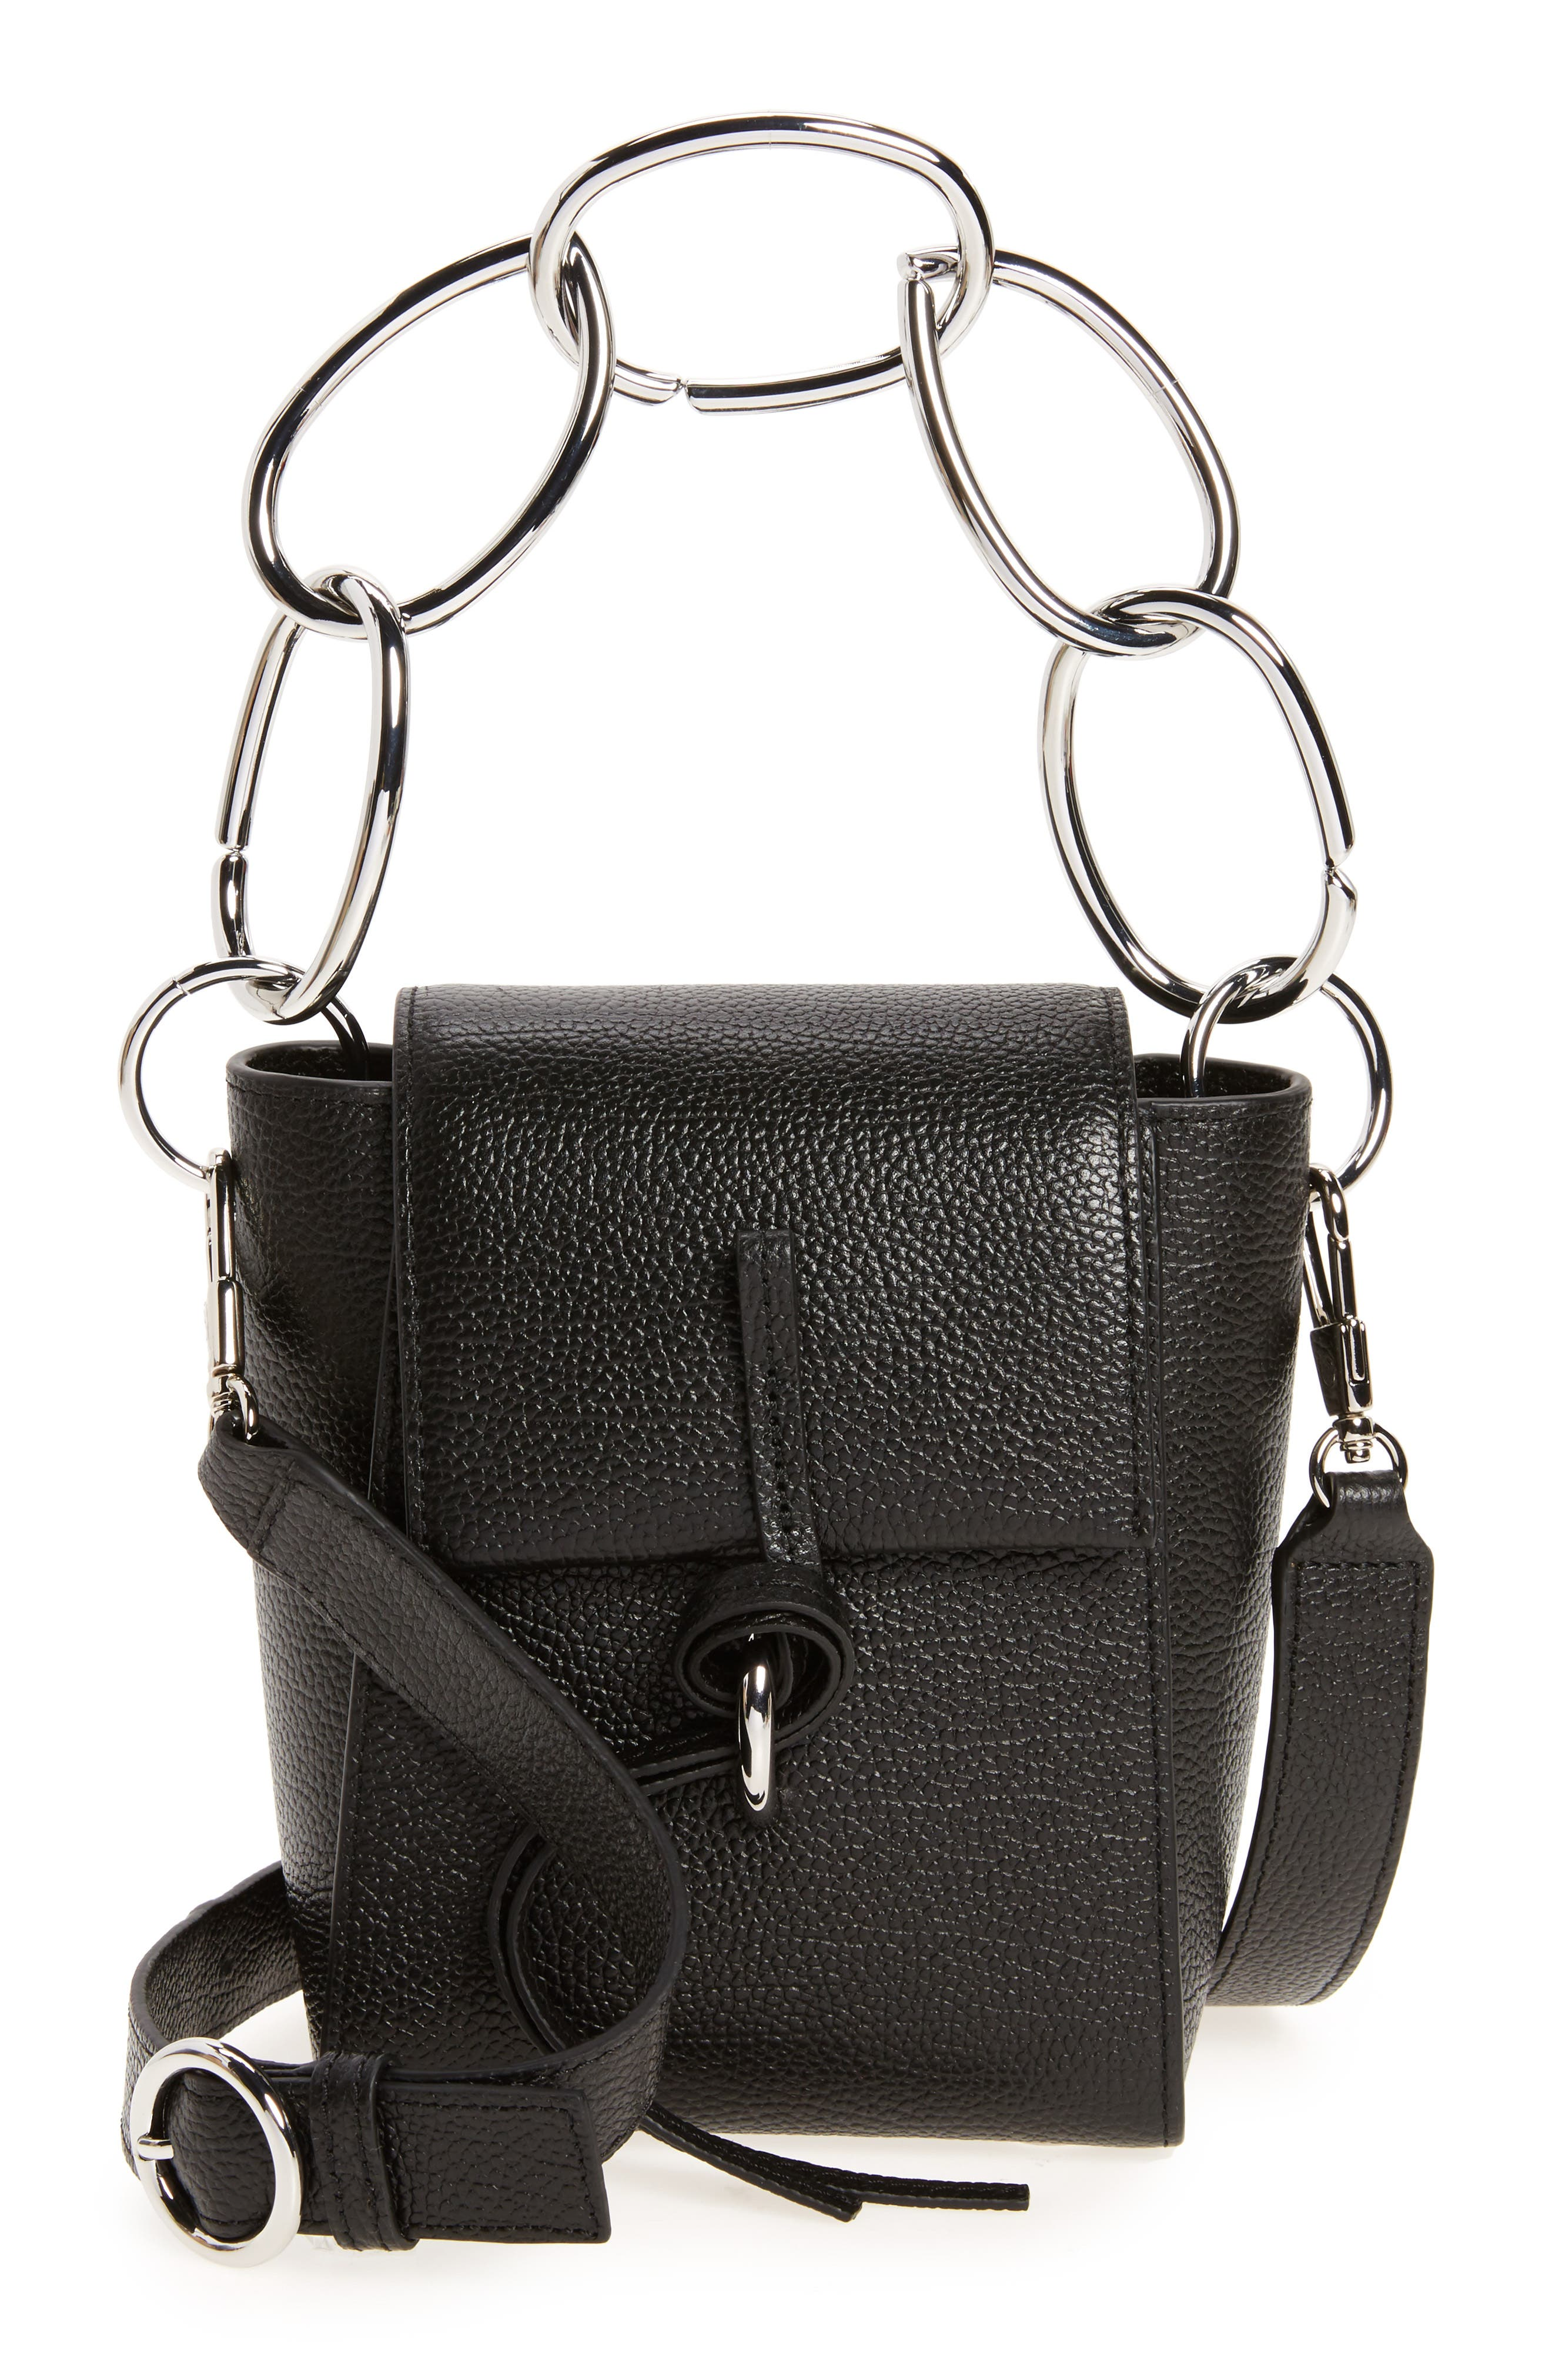 Alternate Image 1 Selected - 3.1 Phillip Lim Small Leigh Top Handle Leather Satchel